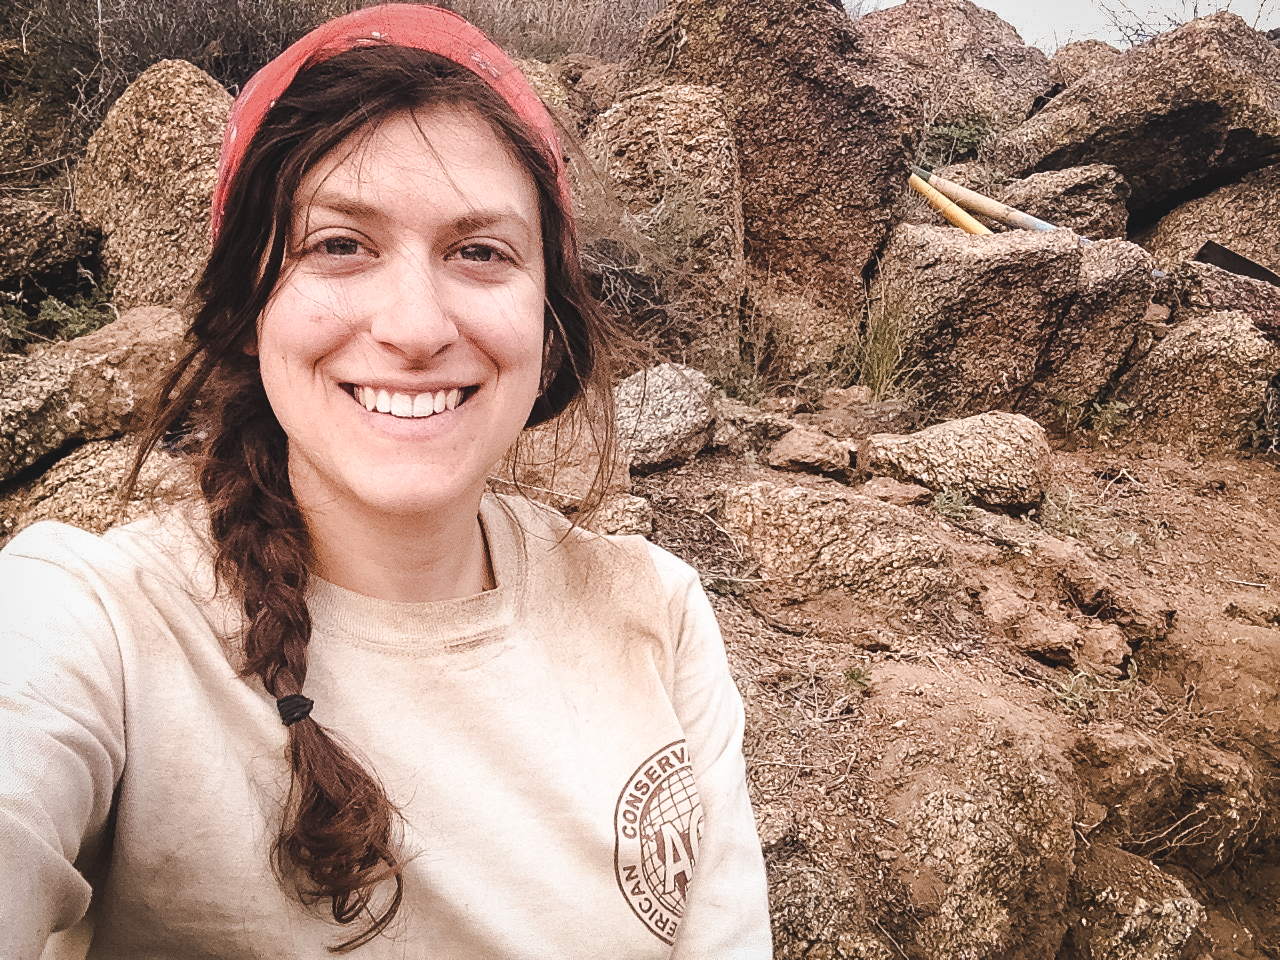 Kelsey outside in the desert, smiling at the camera in the conservation corps